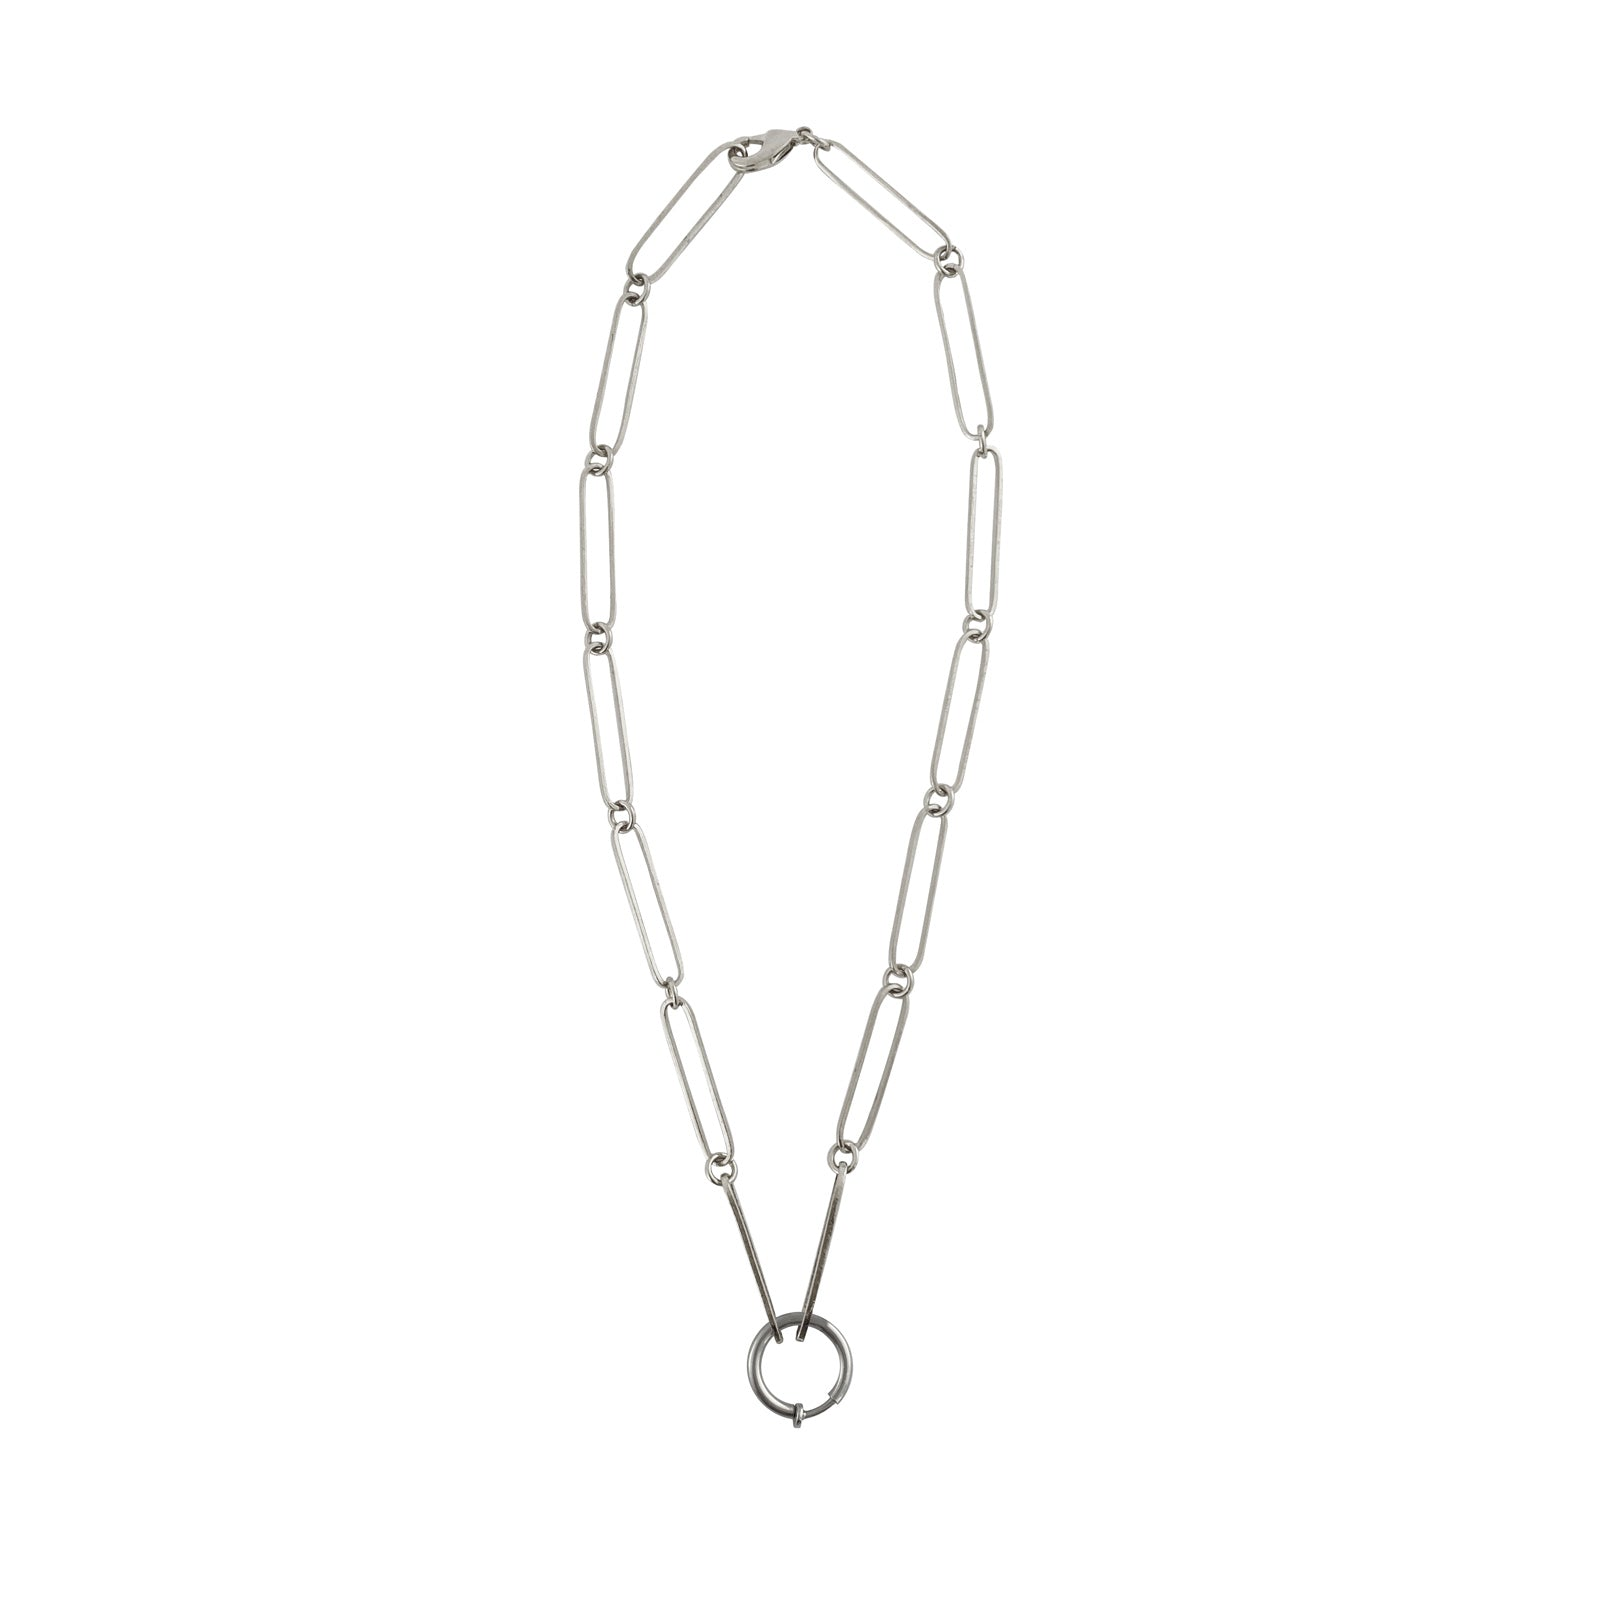 Mystic chain elongated silver 925 links colombian jewelry ana buendia